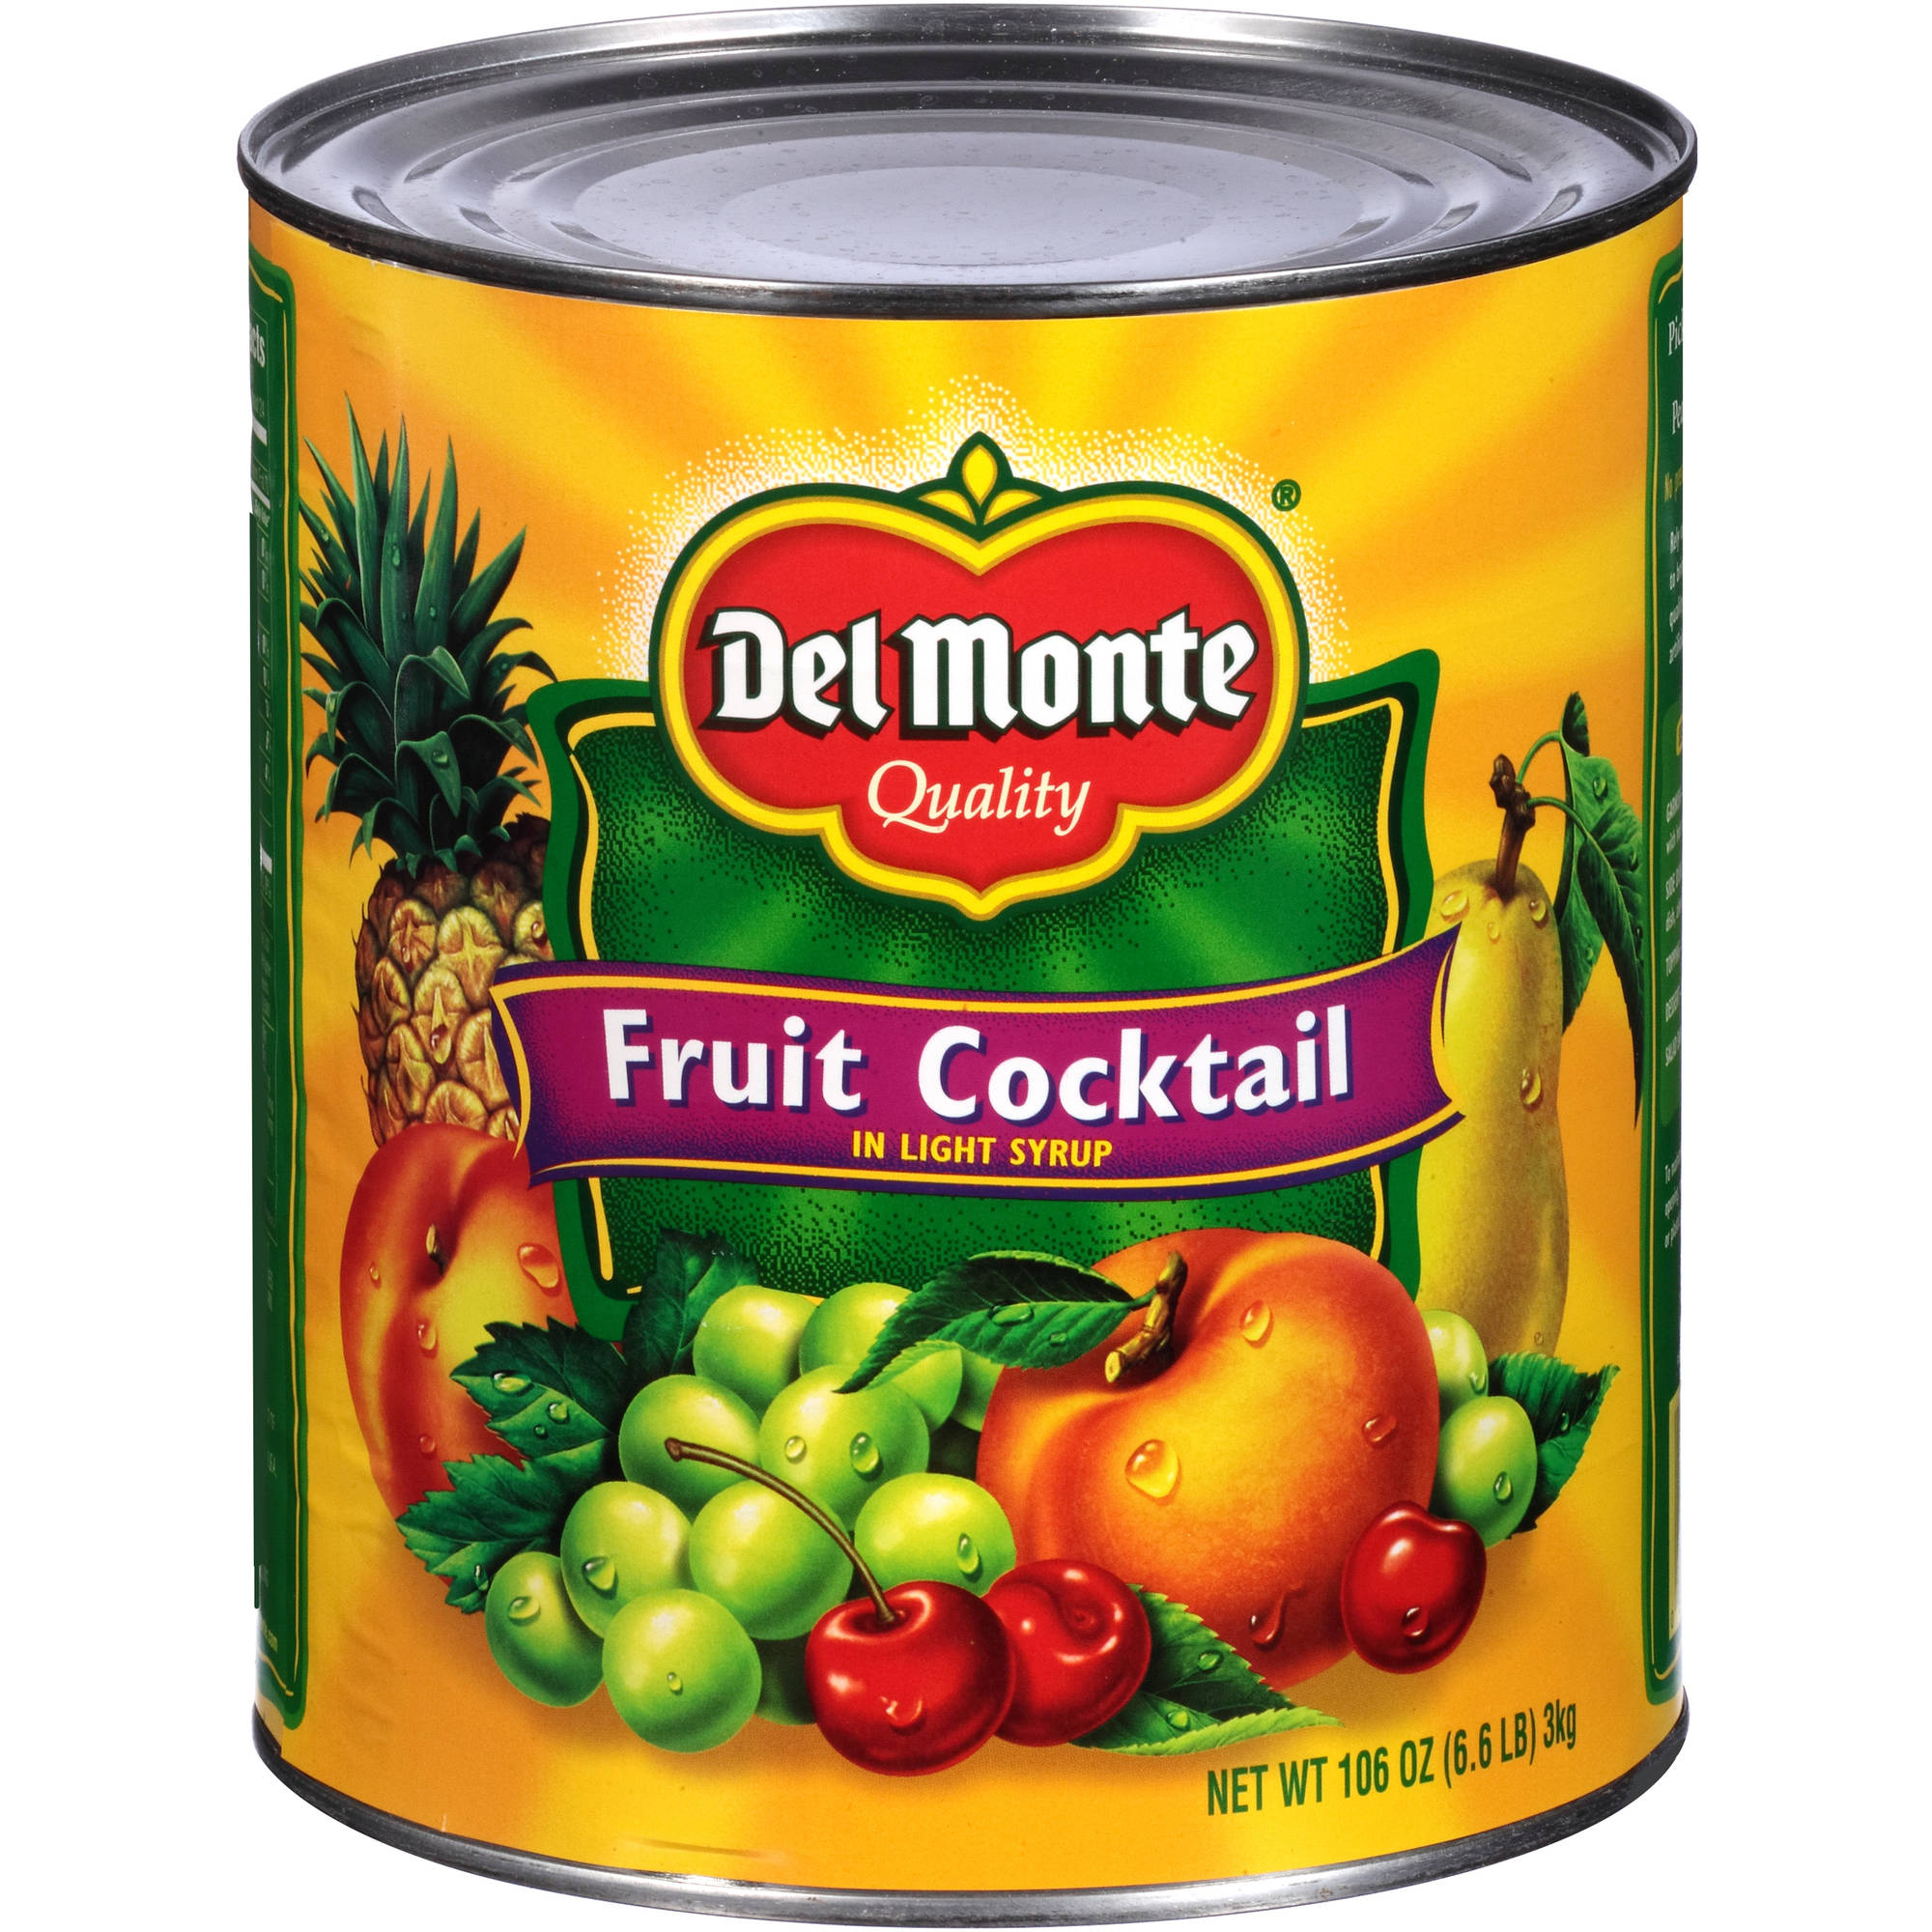 Canned mixed fruits cocktail